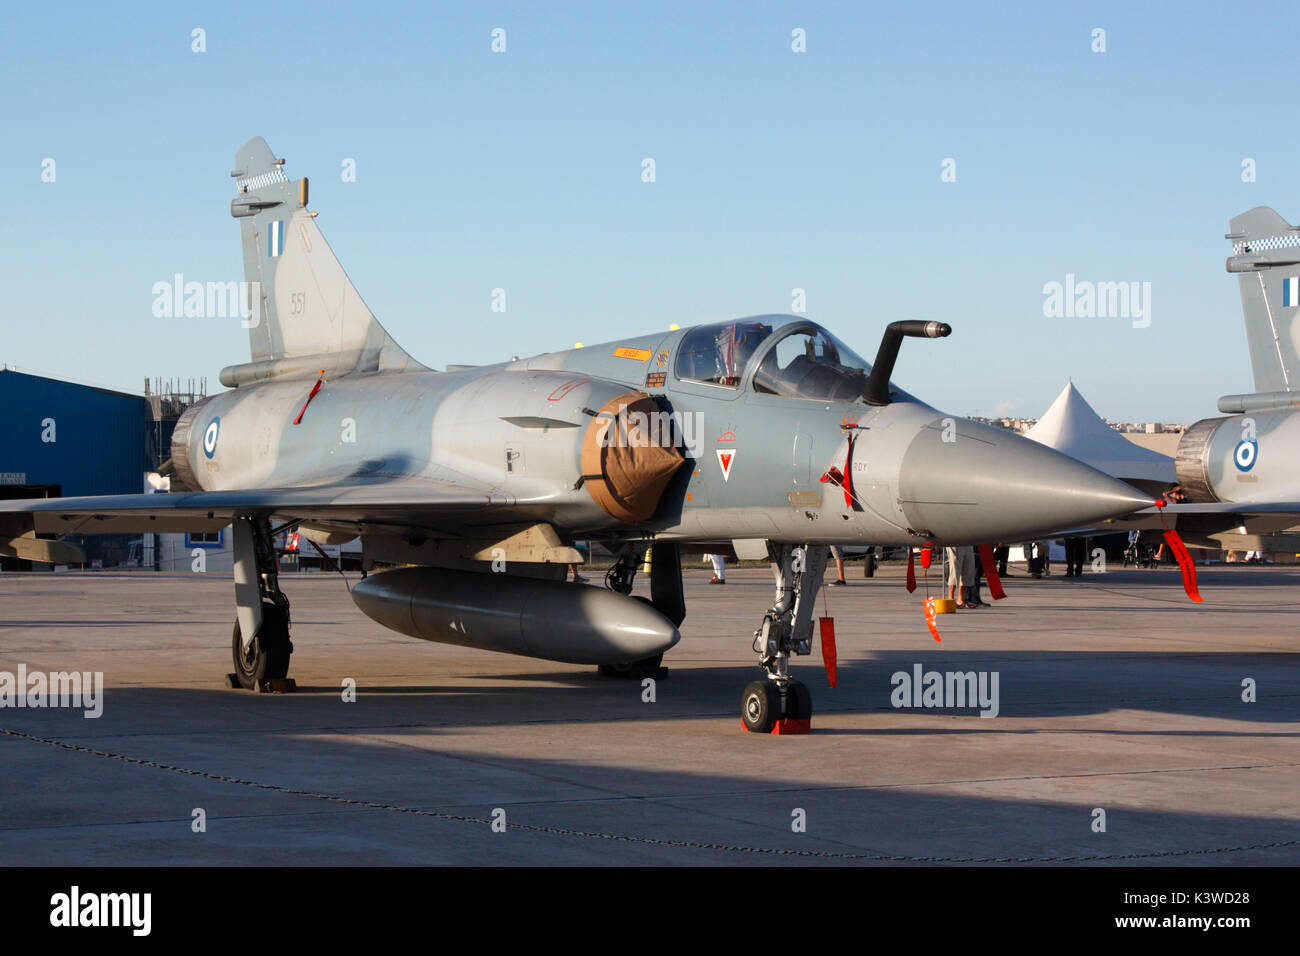 Dassault Mirage 2000 jet fighter of the Greek Air Force - Stock Image